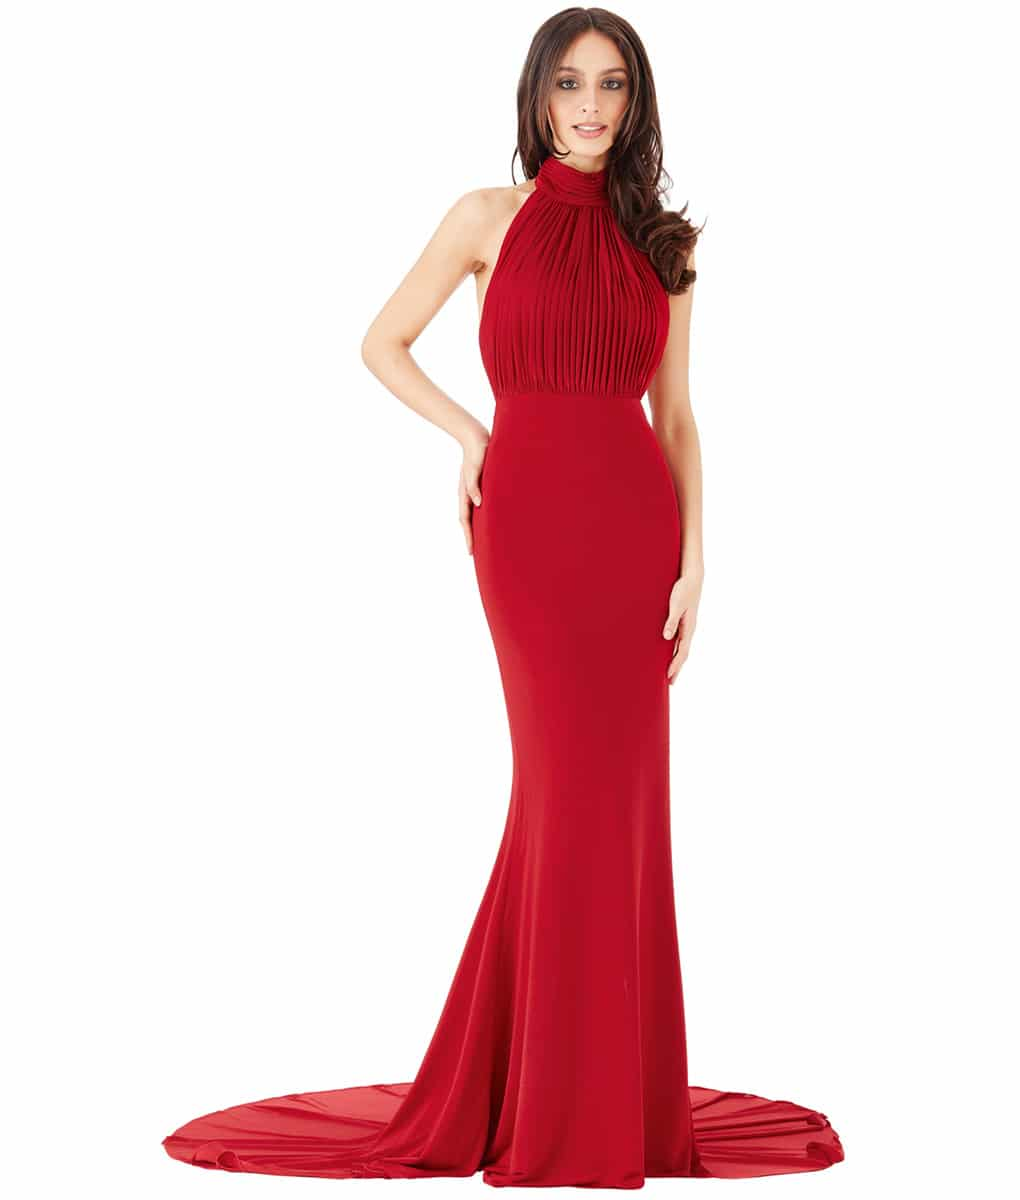 Alila-Red-Backless-Debs-Dress-City-Goddess-front